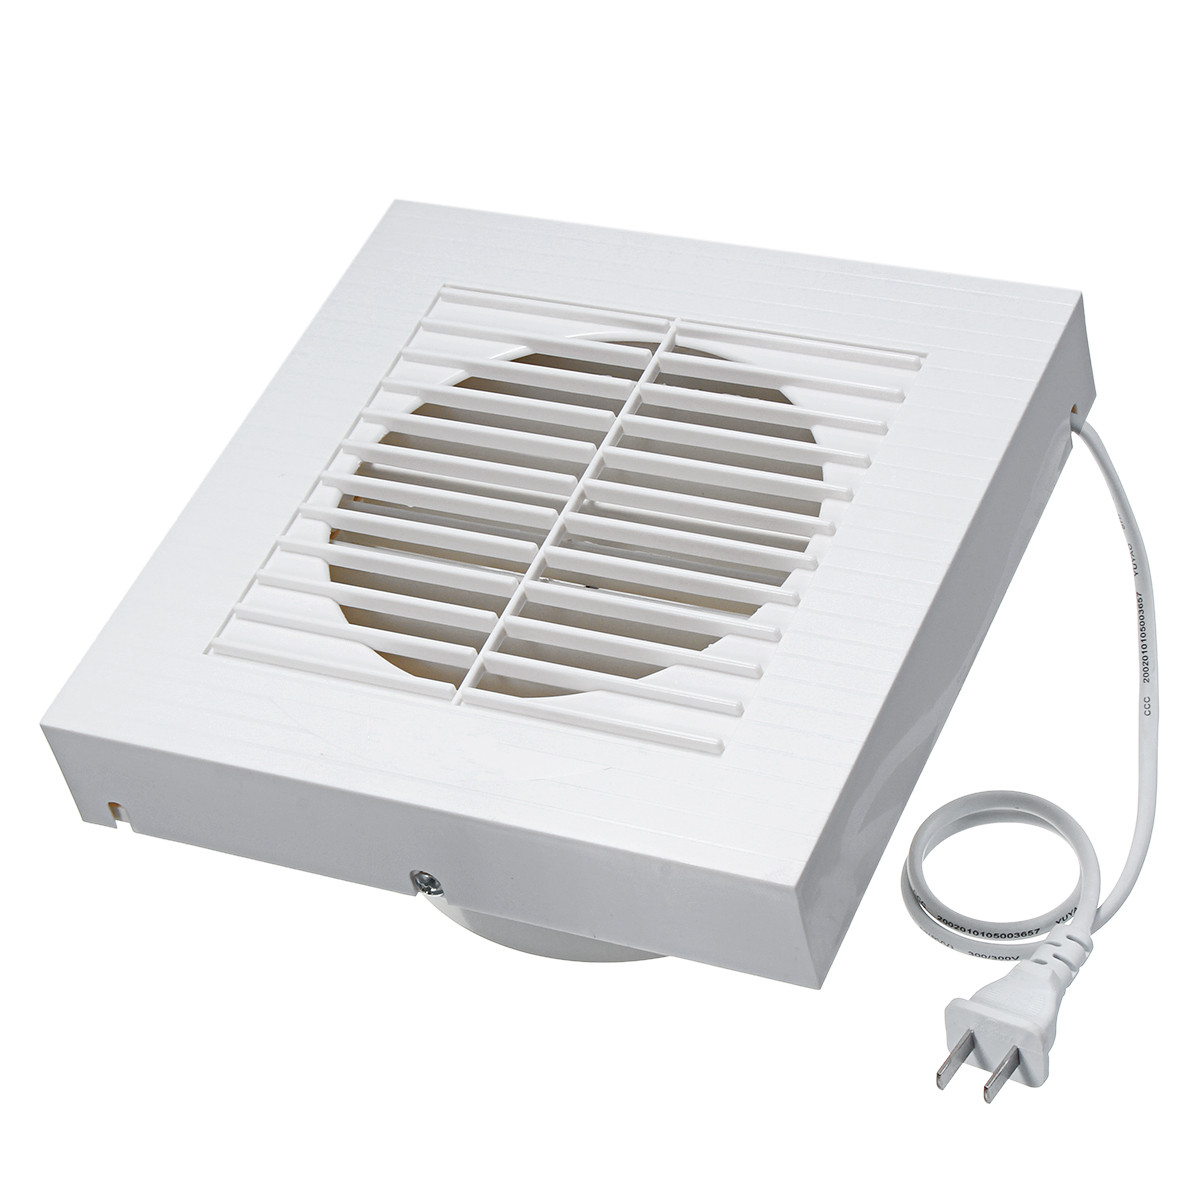 Bathroom Exhaust Fans : Inch v mini exhaust fan entilation blower for window